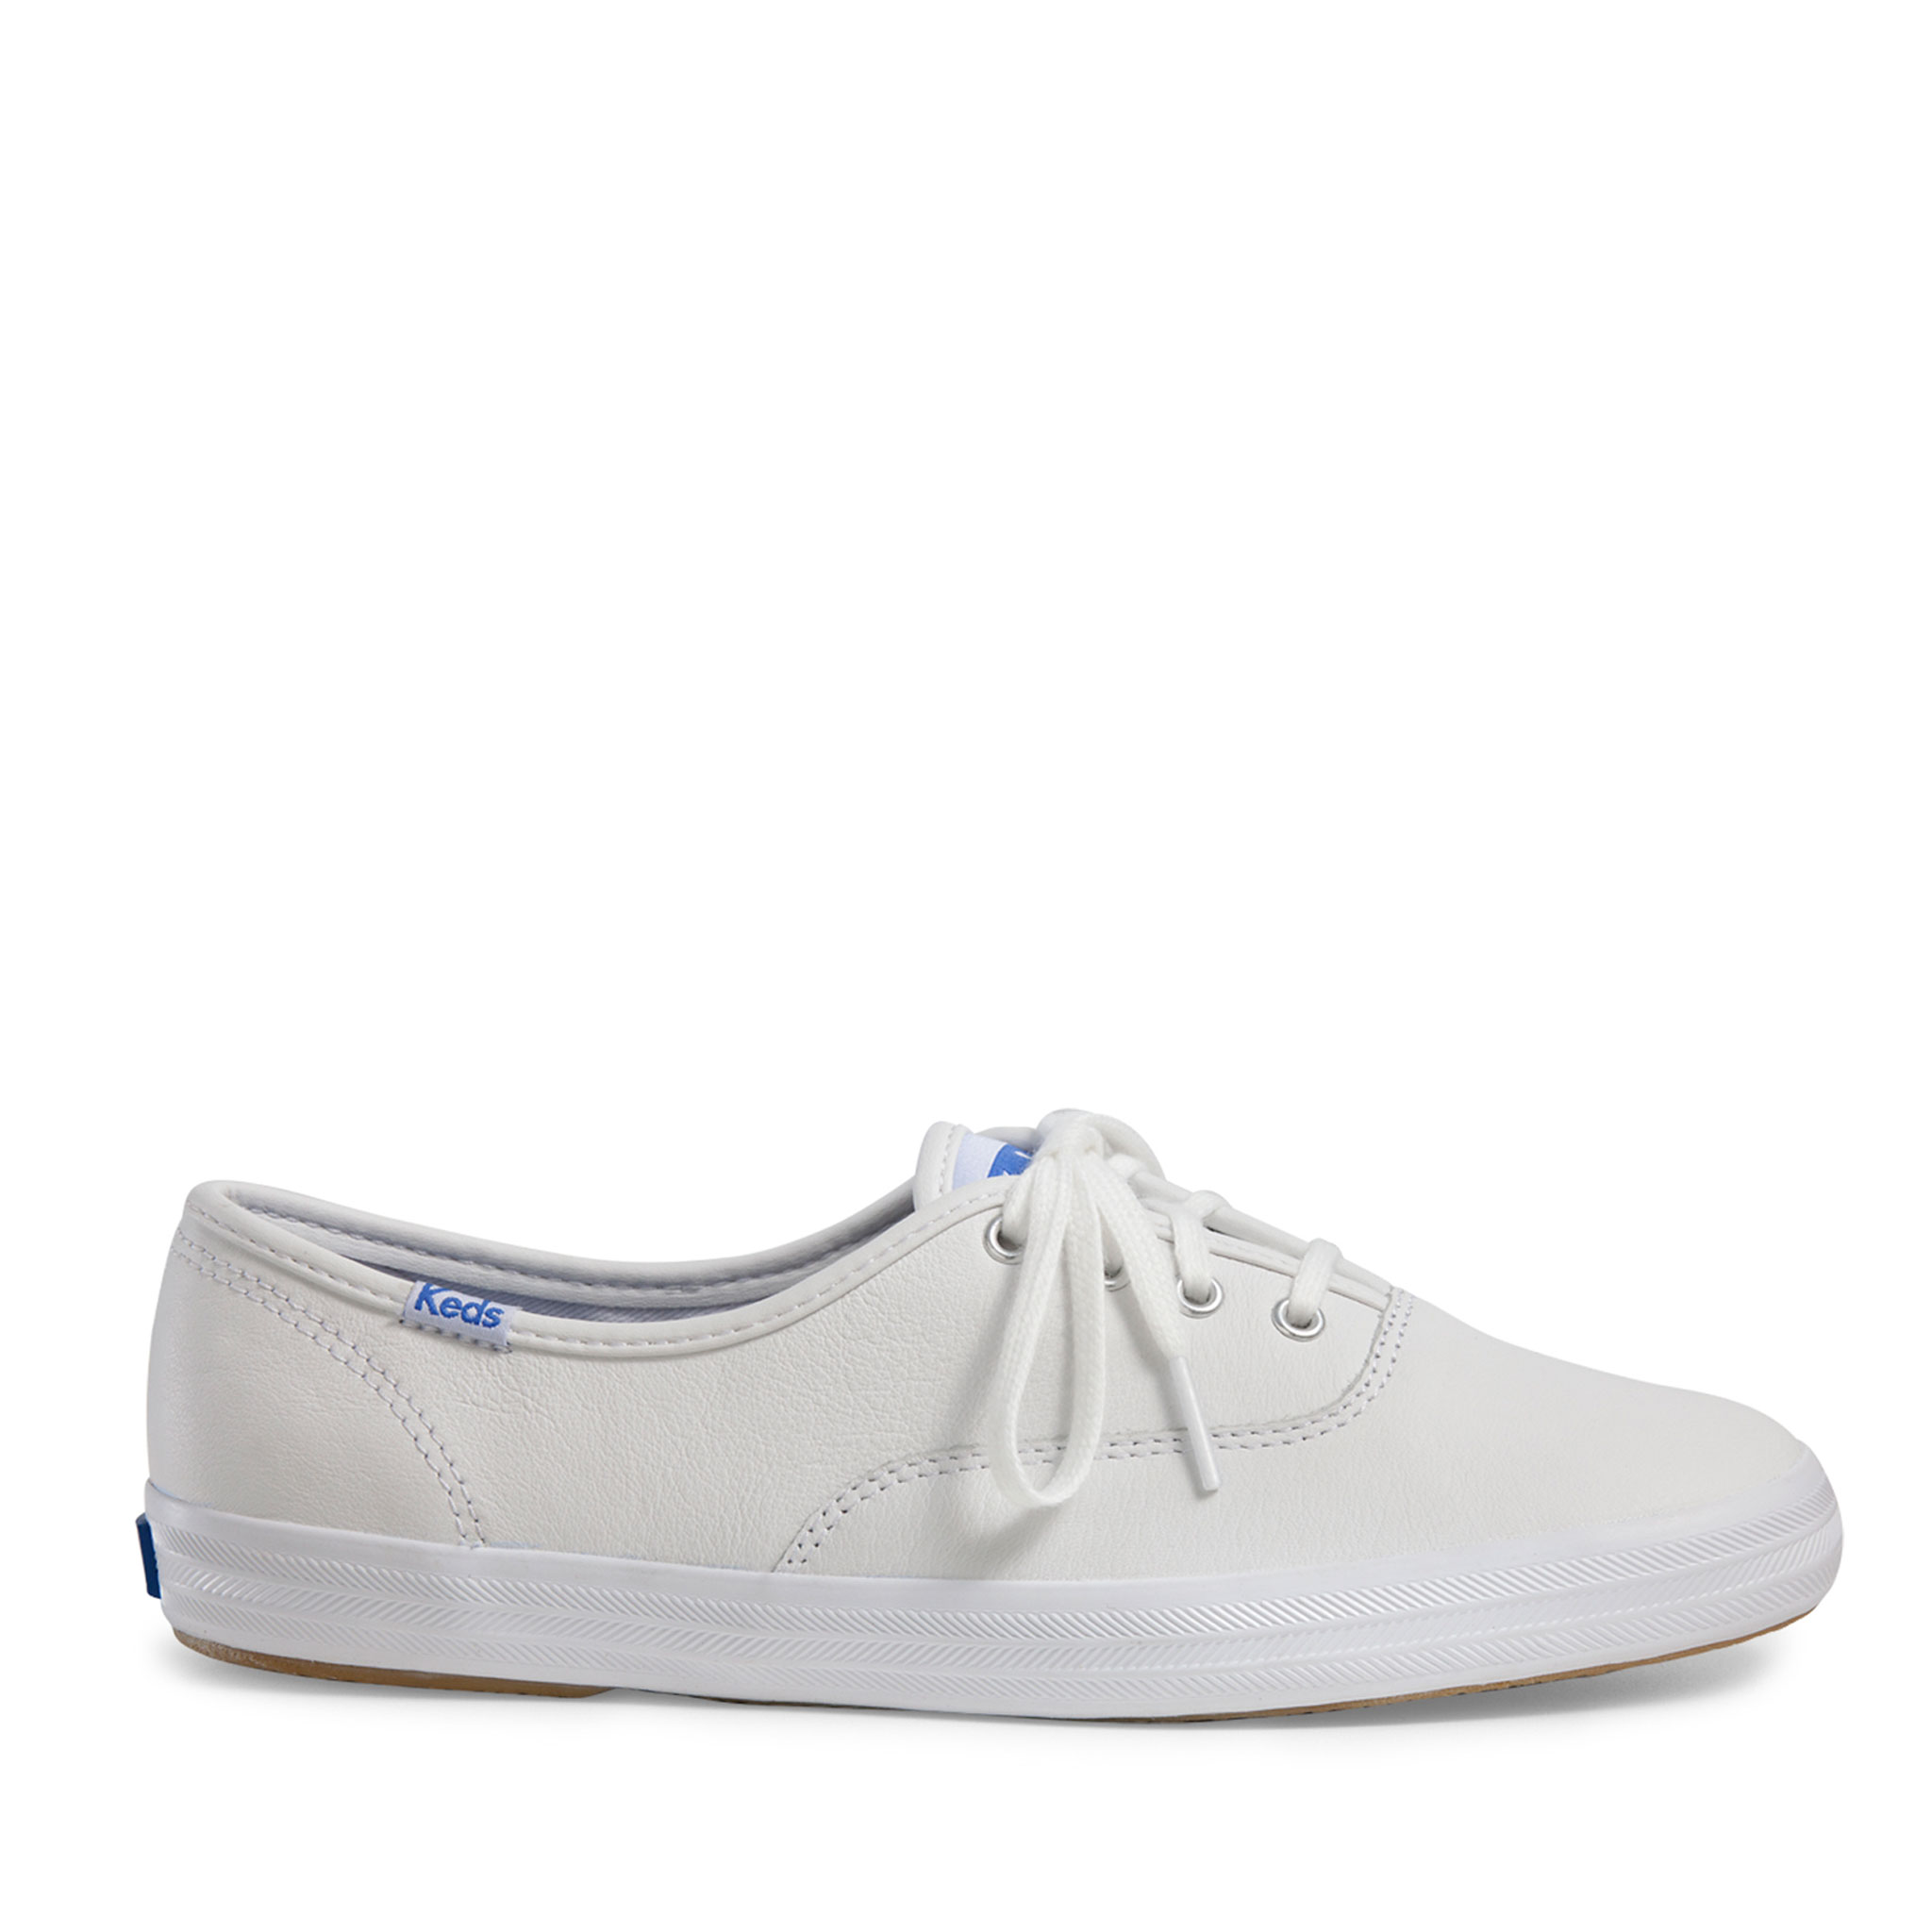 45e7c2994bb2 Keds Women s Champion Leather Oxford Shoe in White